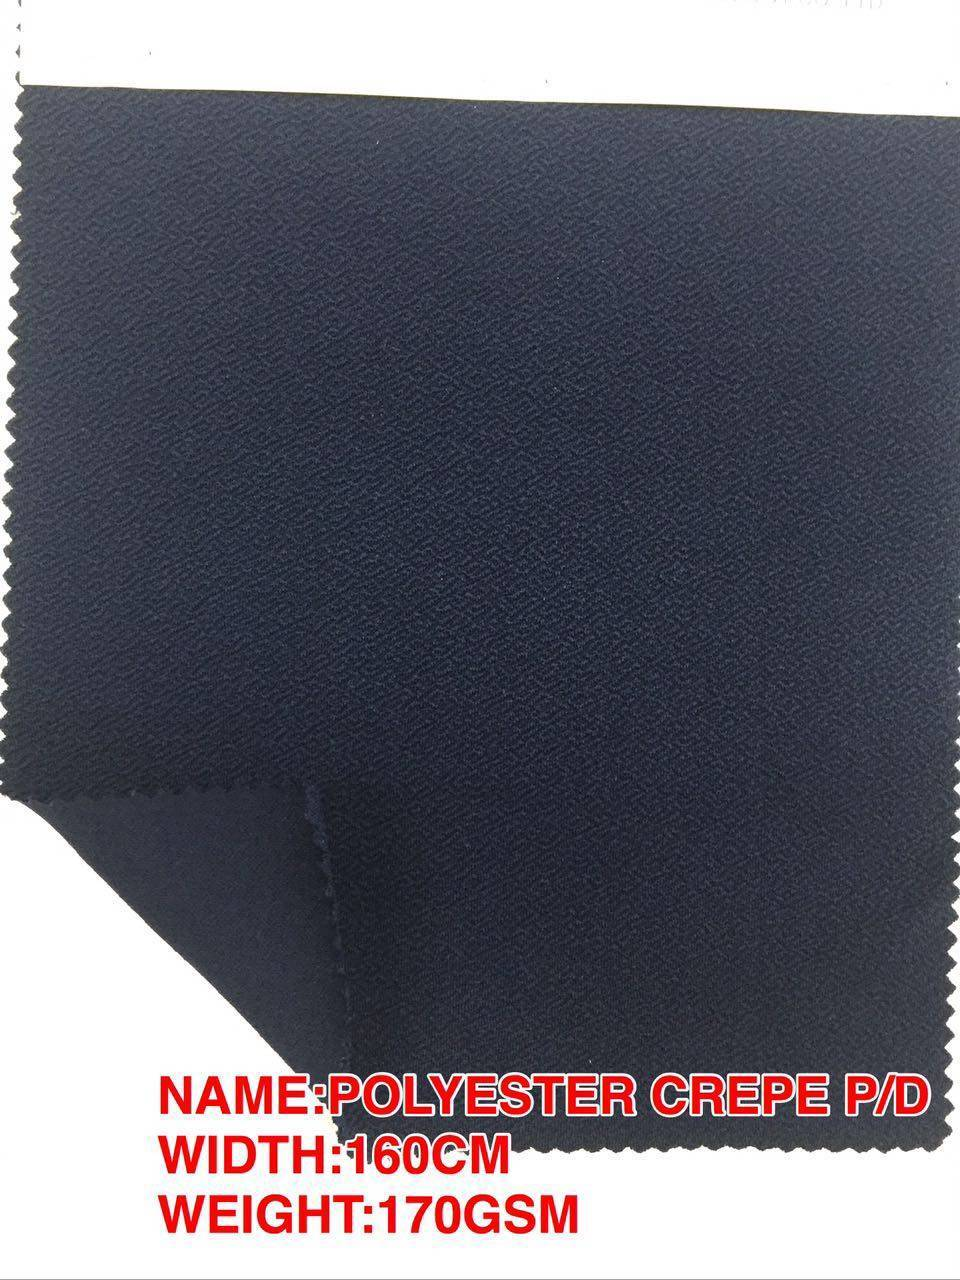 POLYESTER CREPE P/D